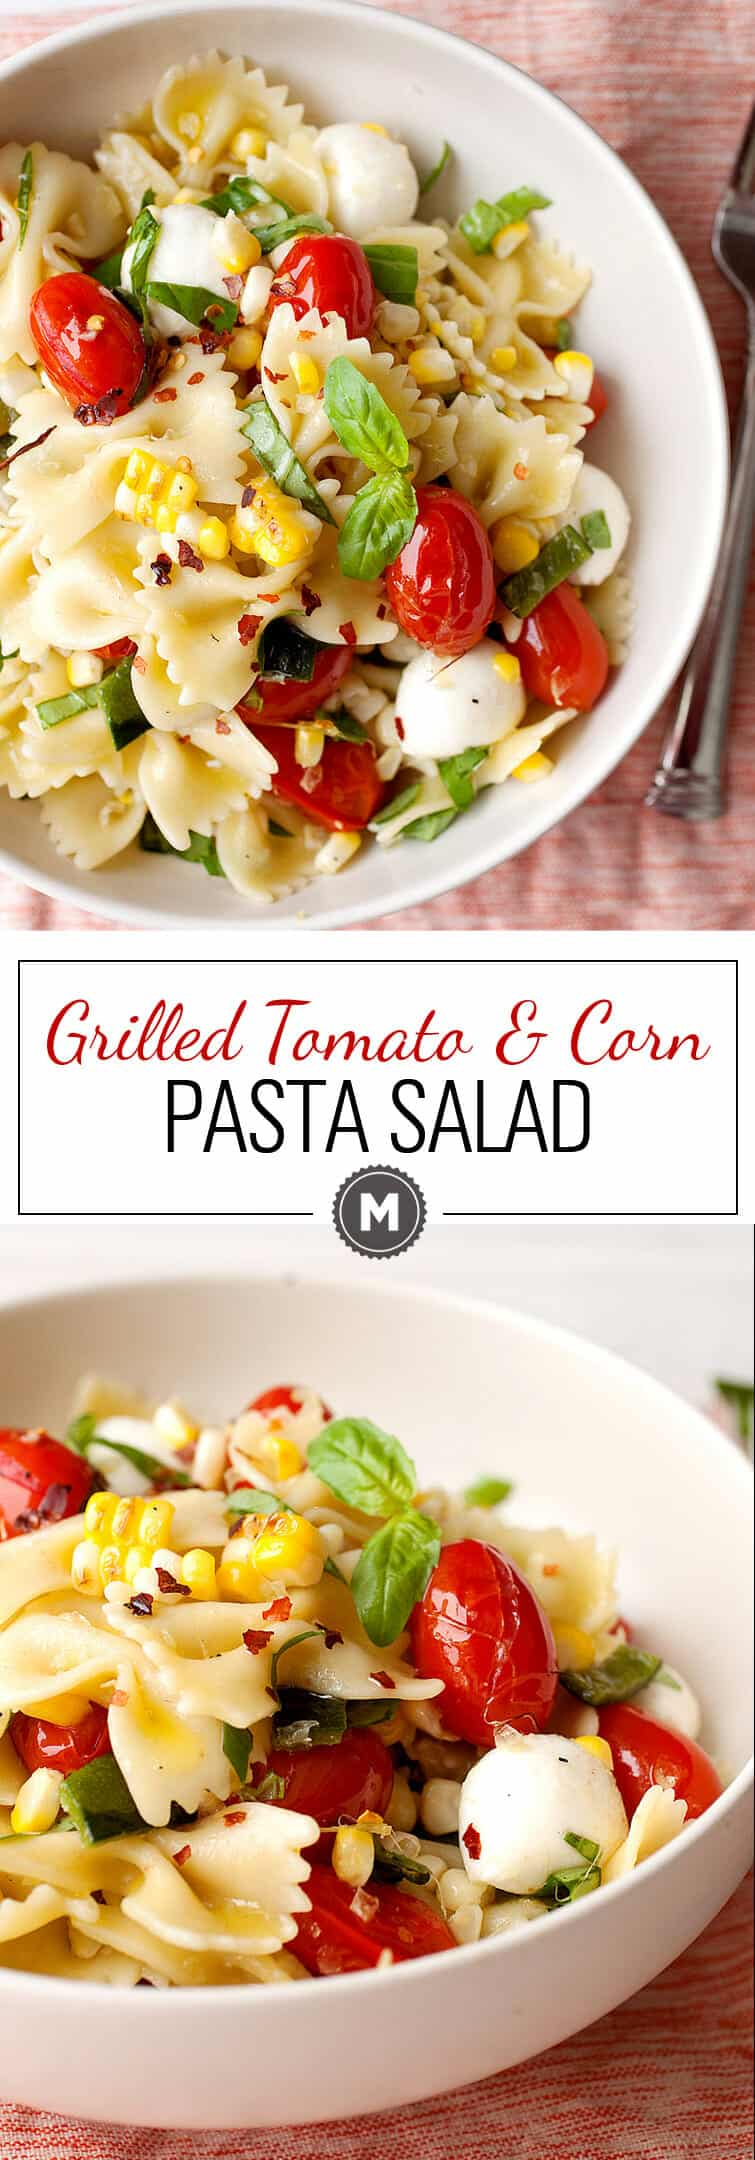 Grilled Tomato and Corn Pasta Salad: A perfect summer pasta ...